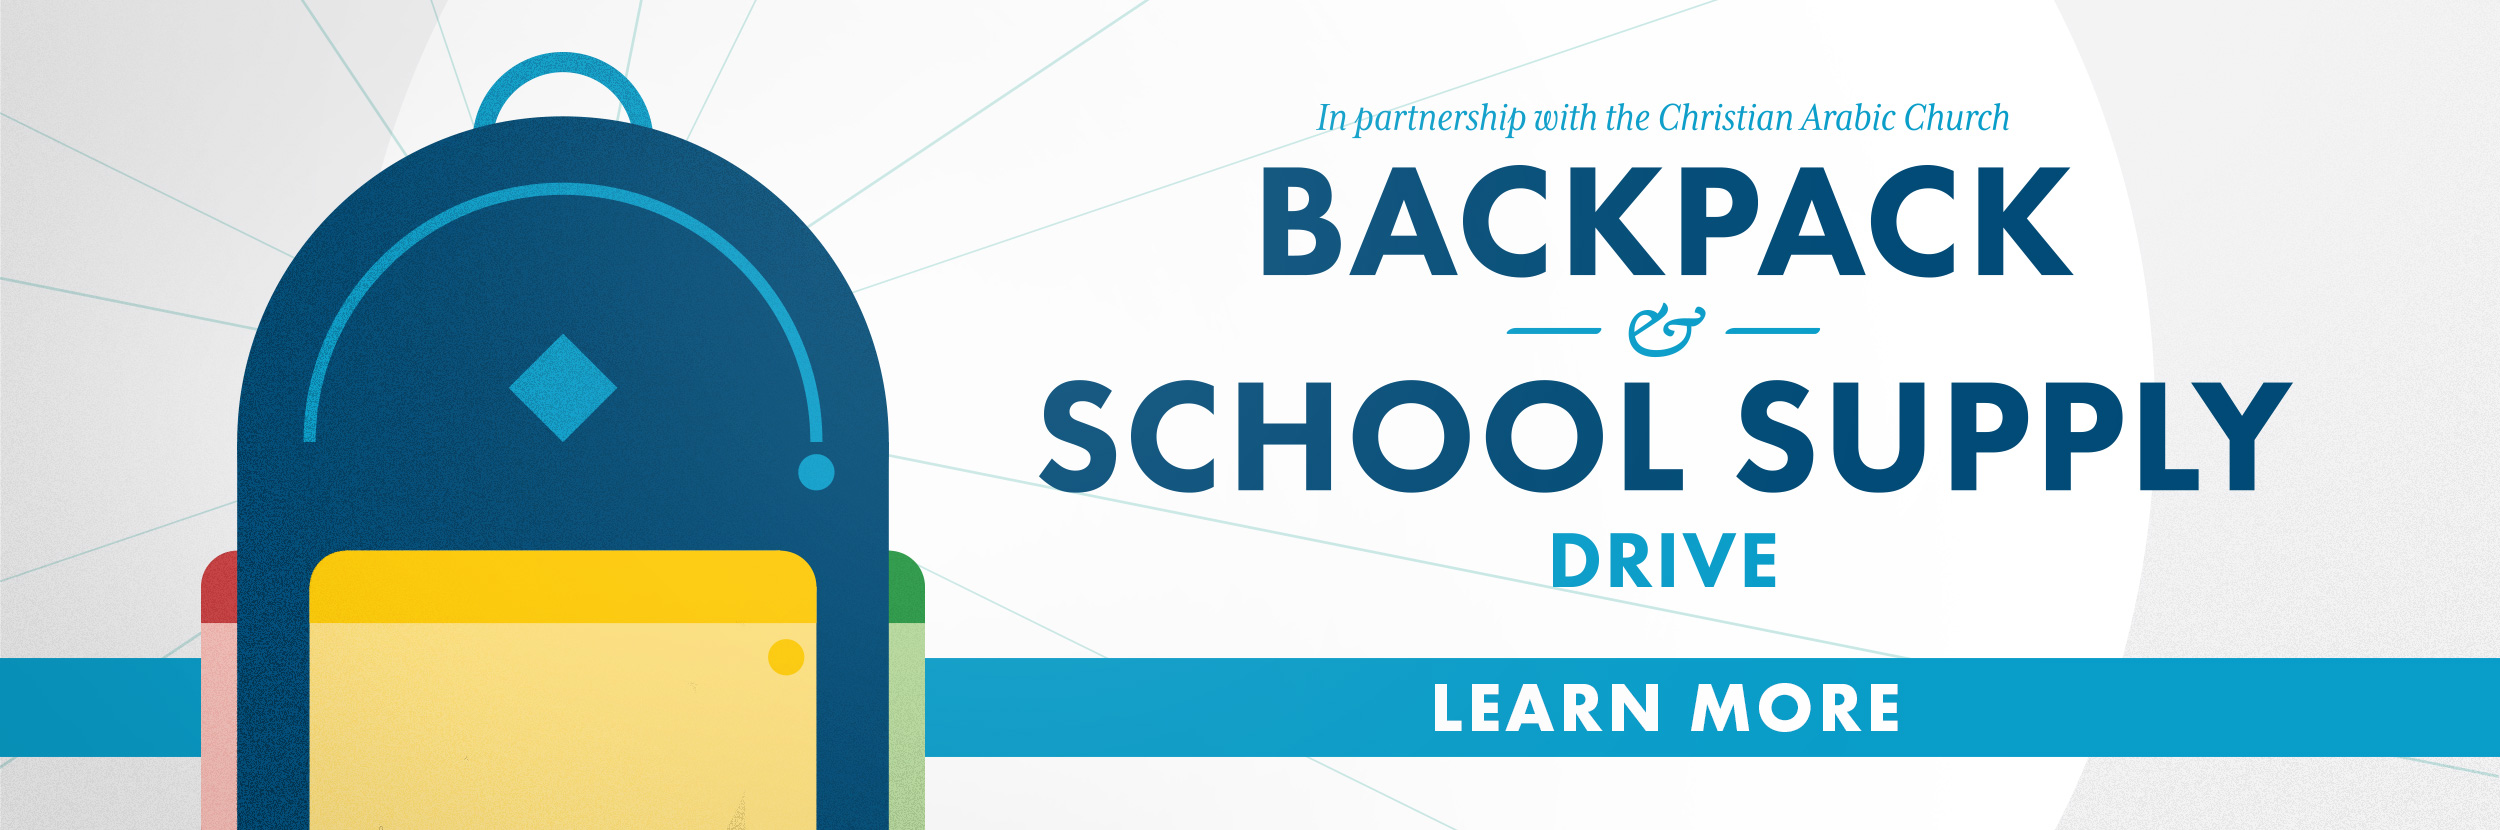 2018-cac-backpack-drive-banner.jpg